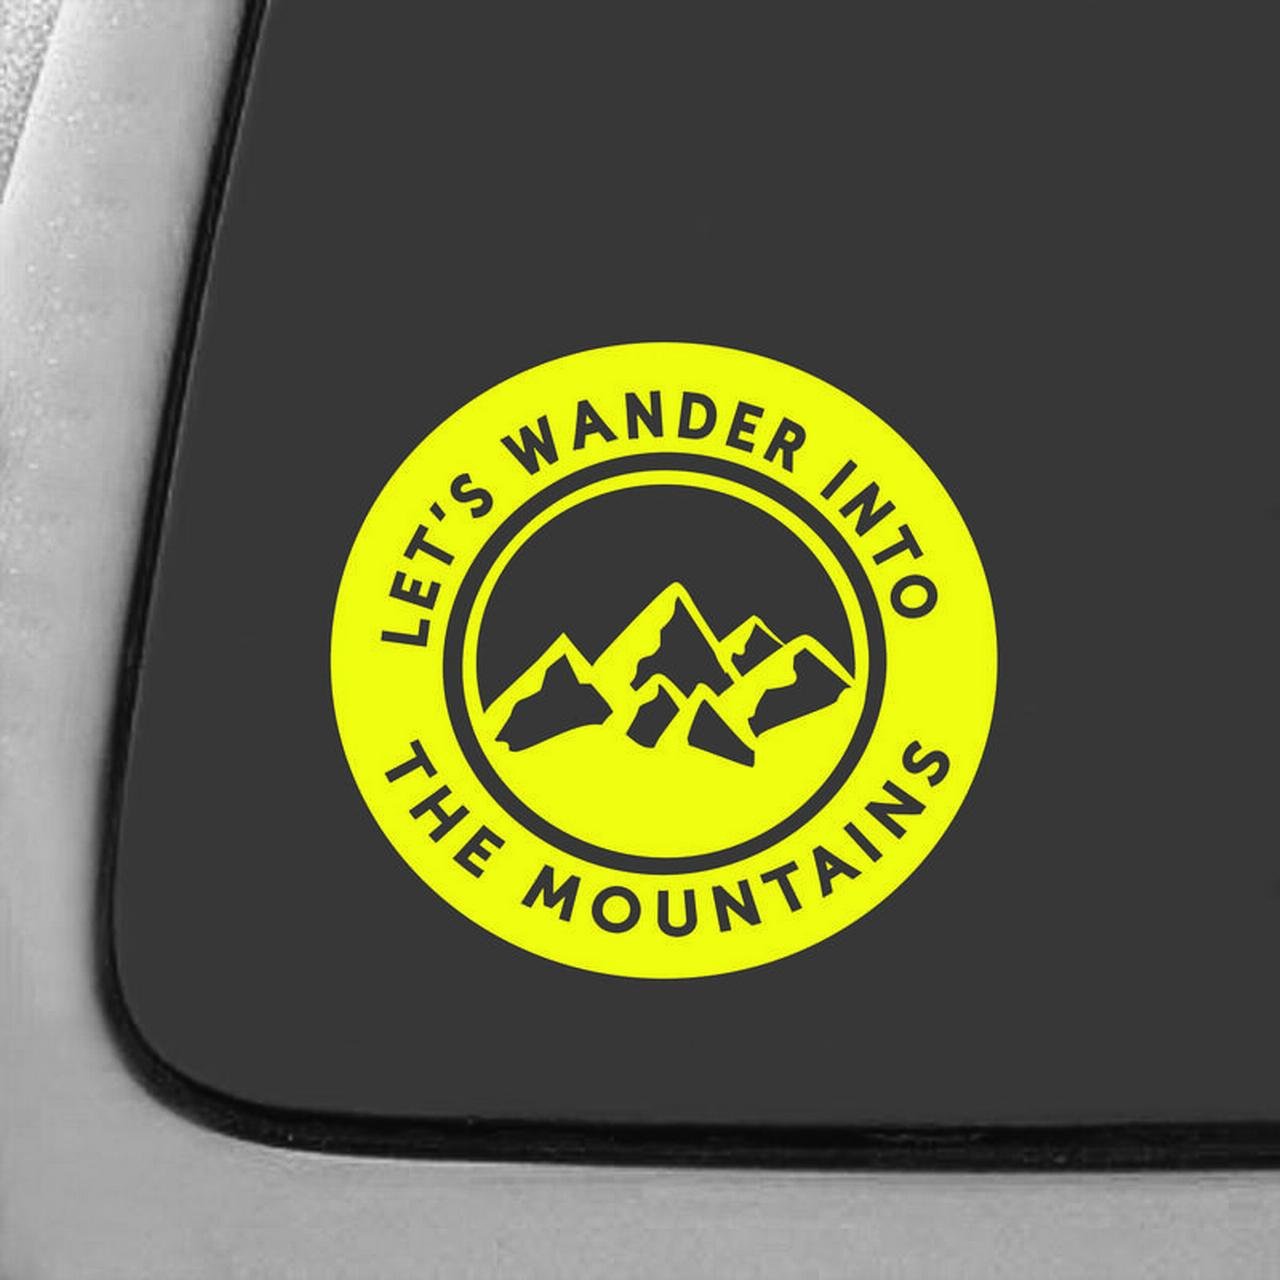 Let/'s Wander Into The Mountains Decal Sticker7-Inches By 6.7-Inches